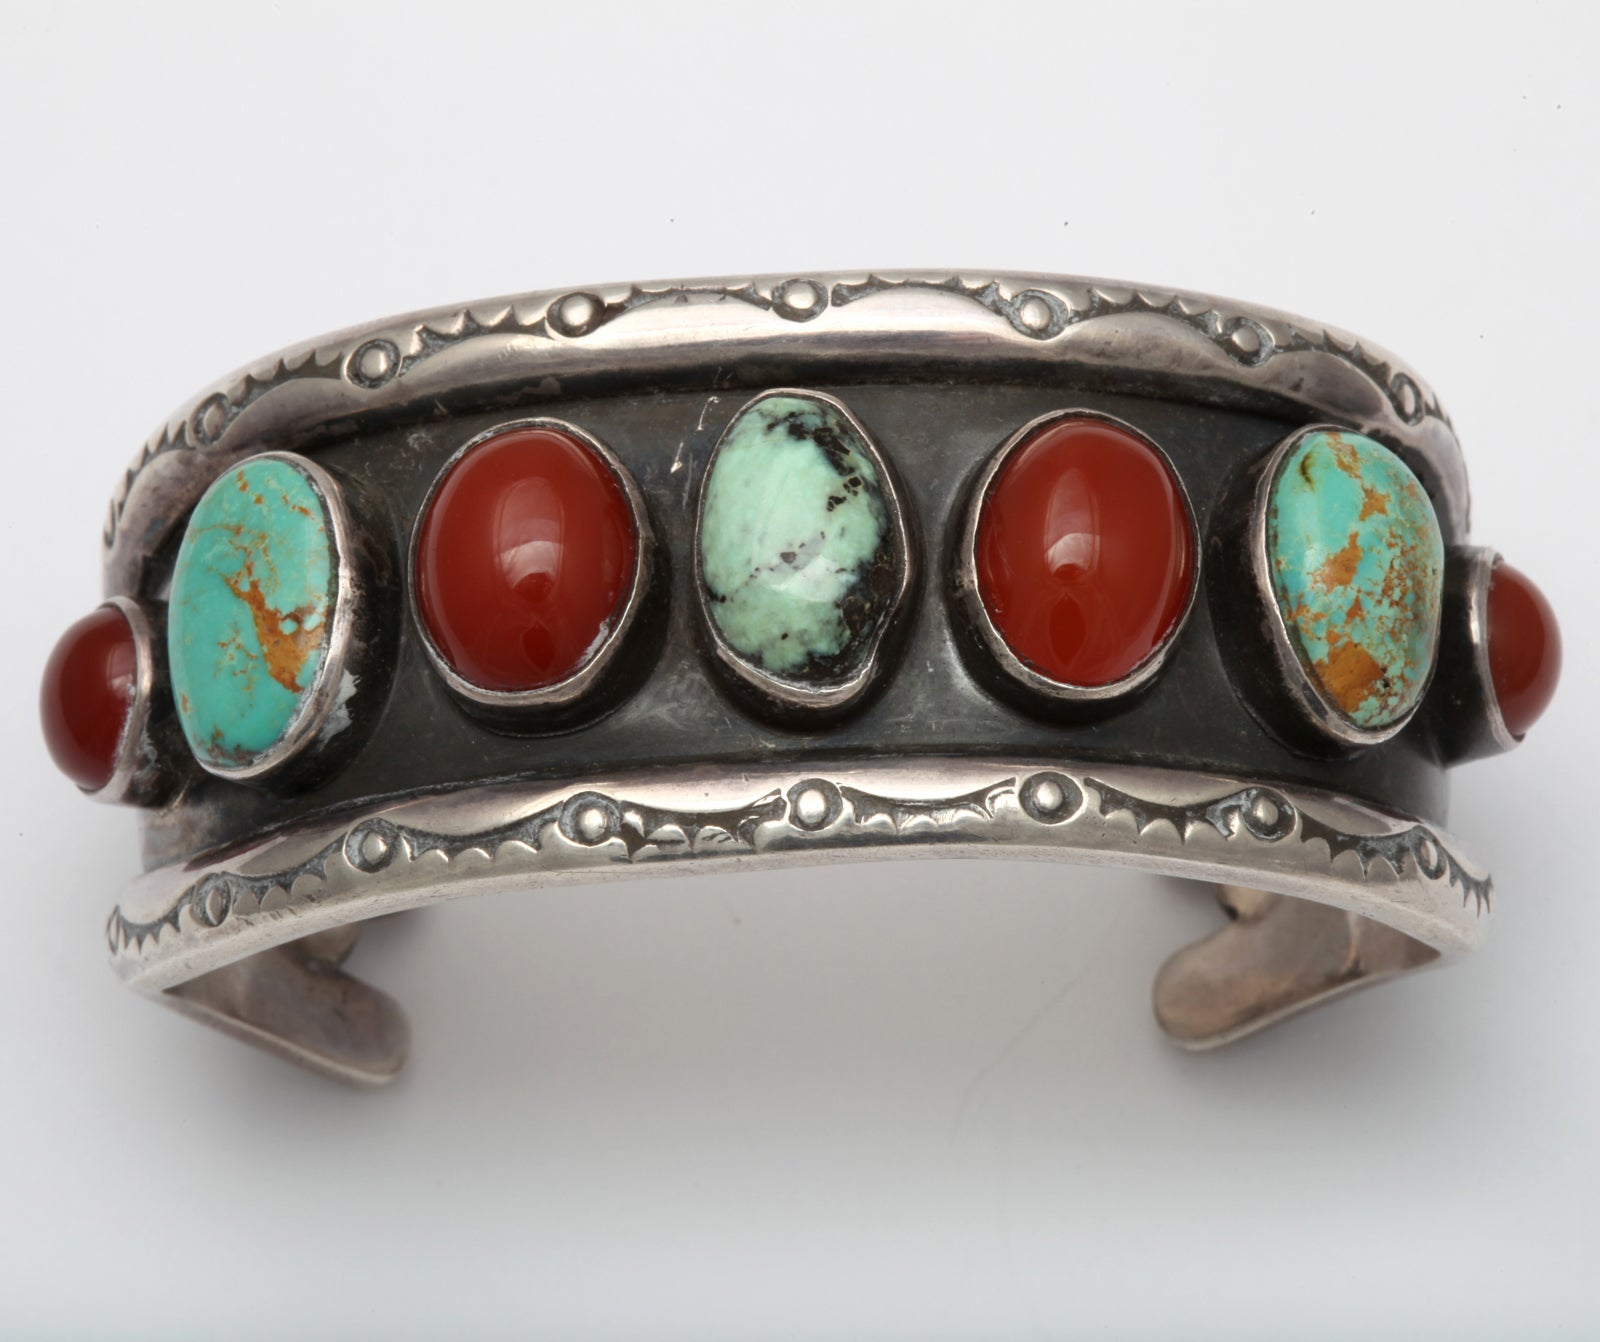 Old Navajo Cuff of Matrix Turquoise and Carnelian 2